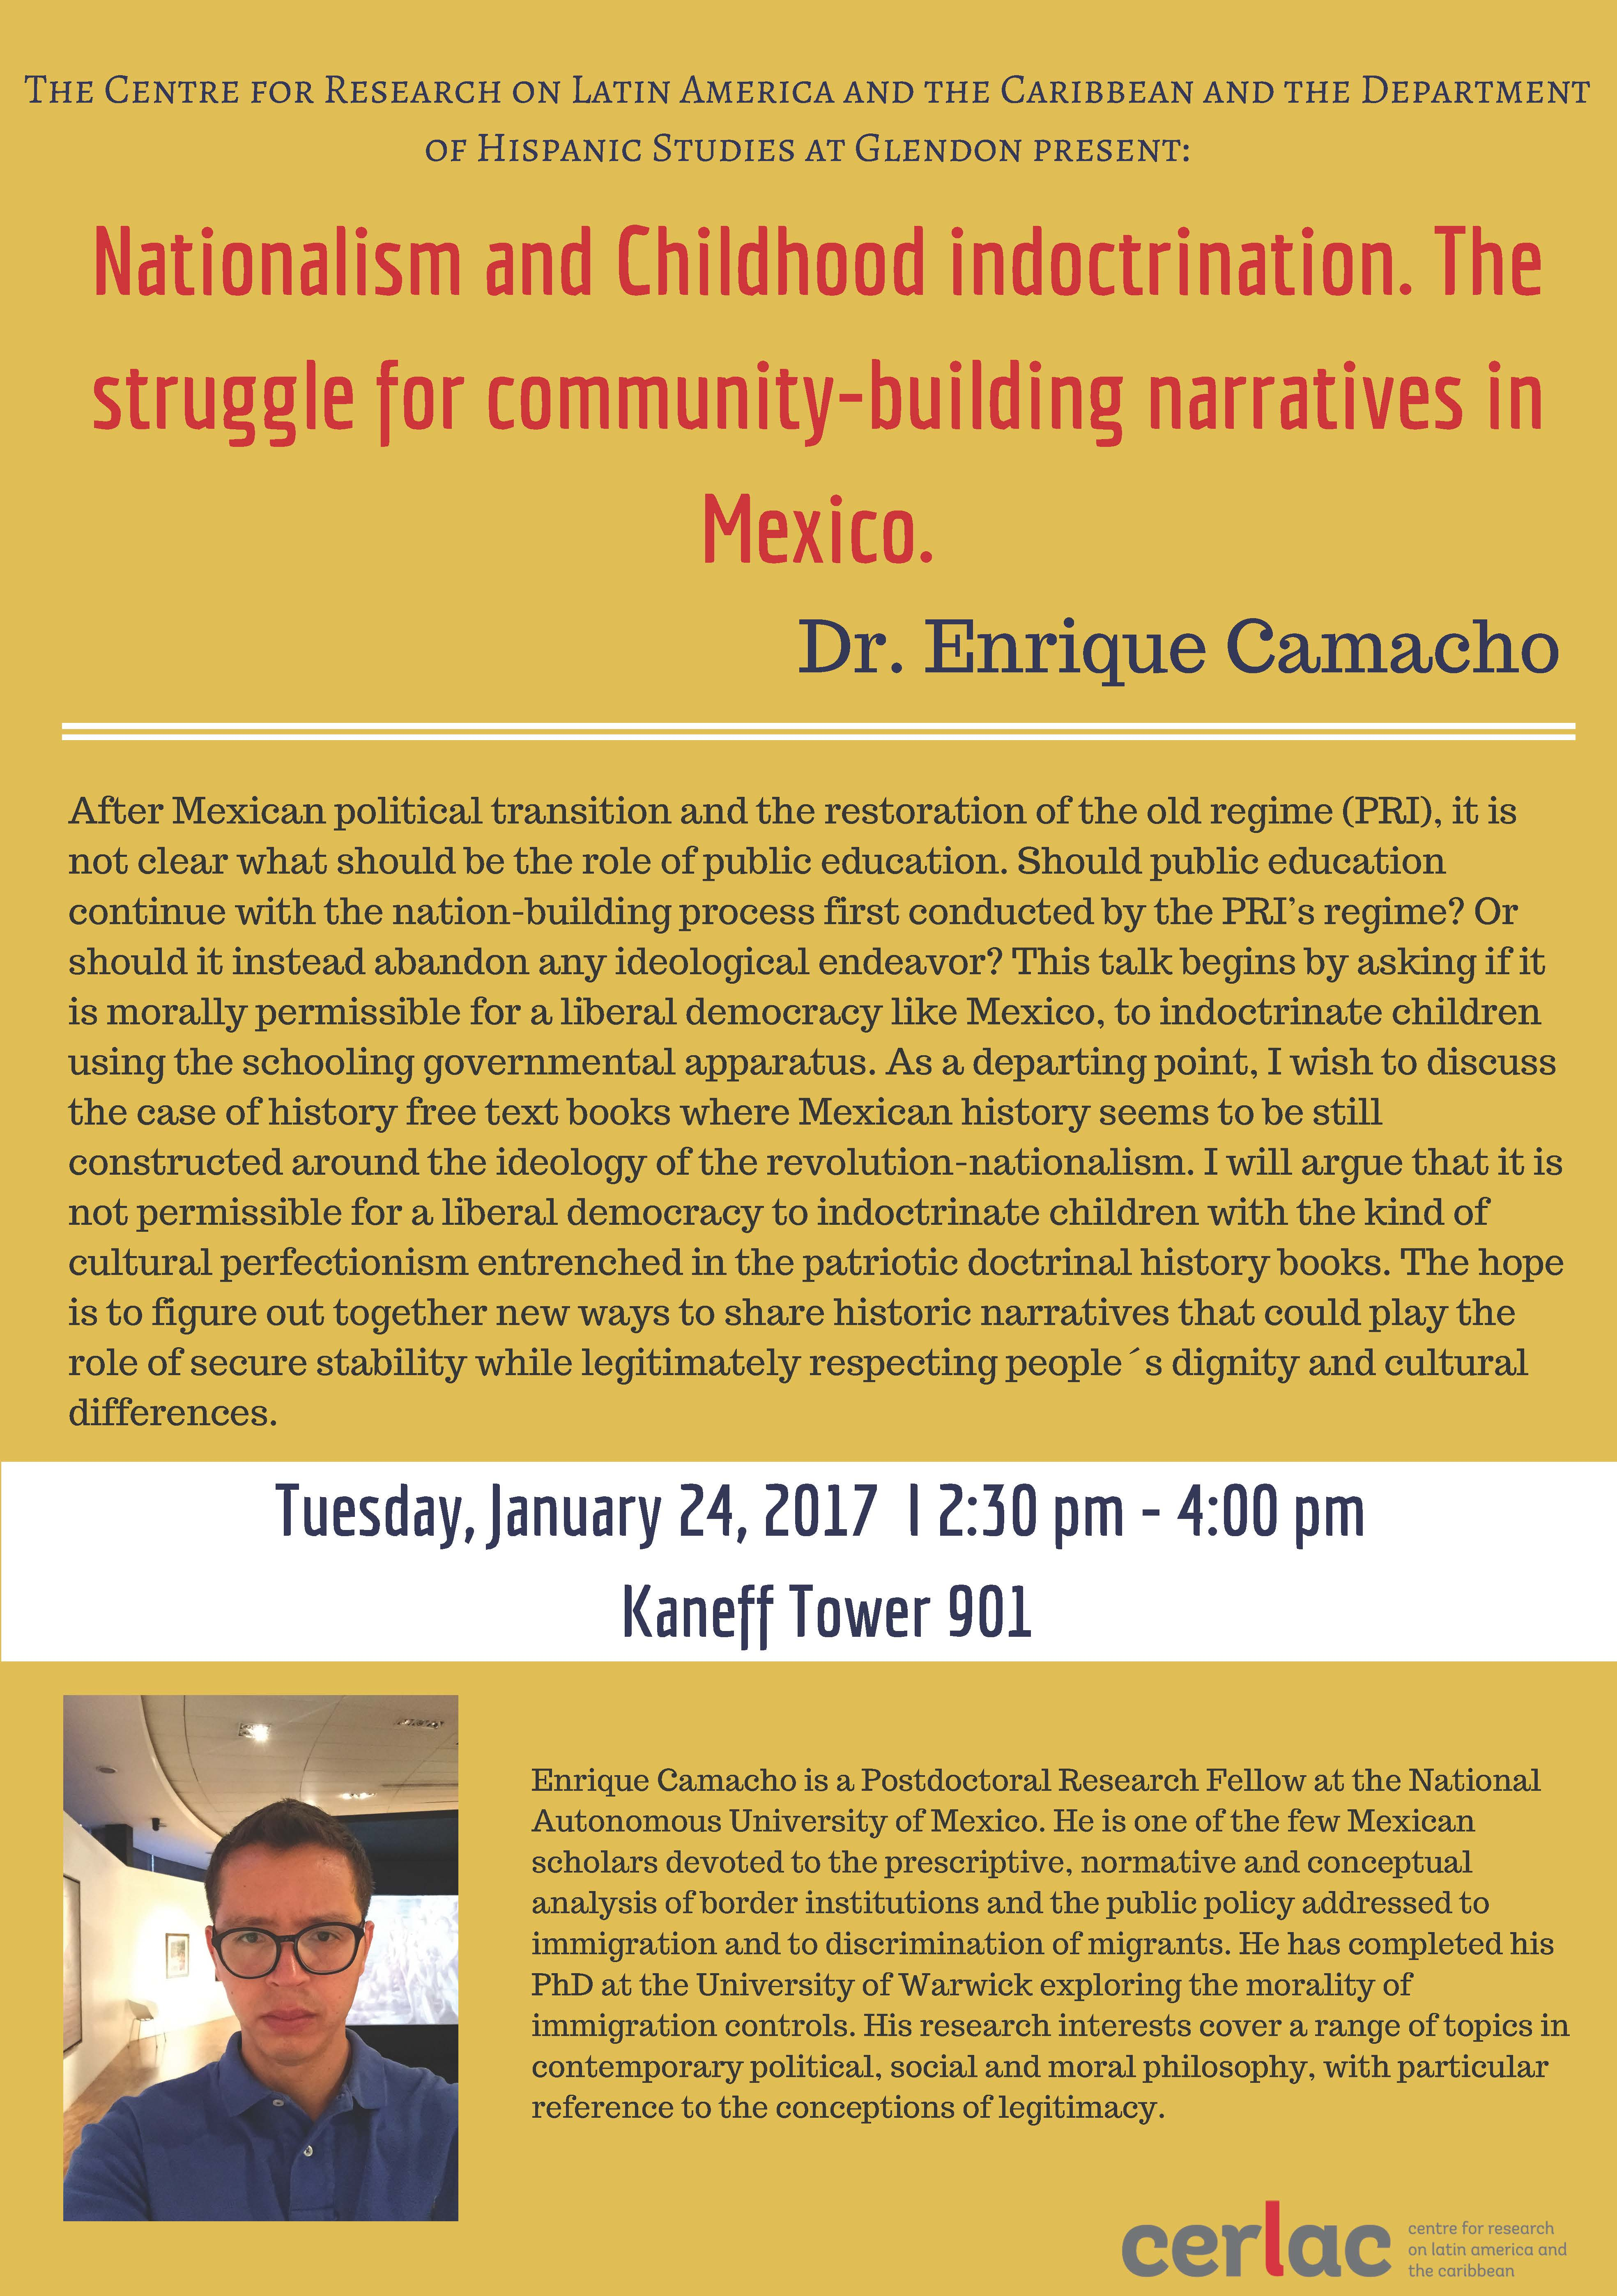 Nationalism and Childhood indoctrination. The struggle for community-building narratives in Mexico. Dr. Enrique Camacho @ Kaneff Tower 901